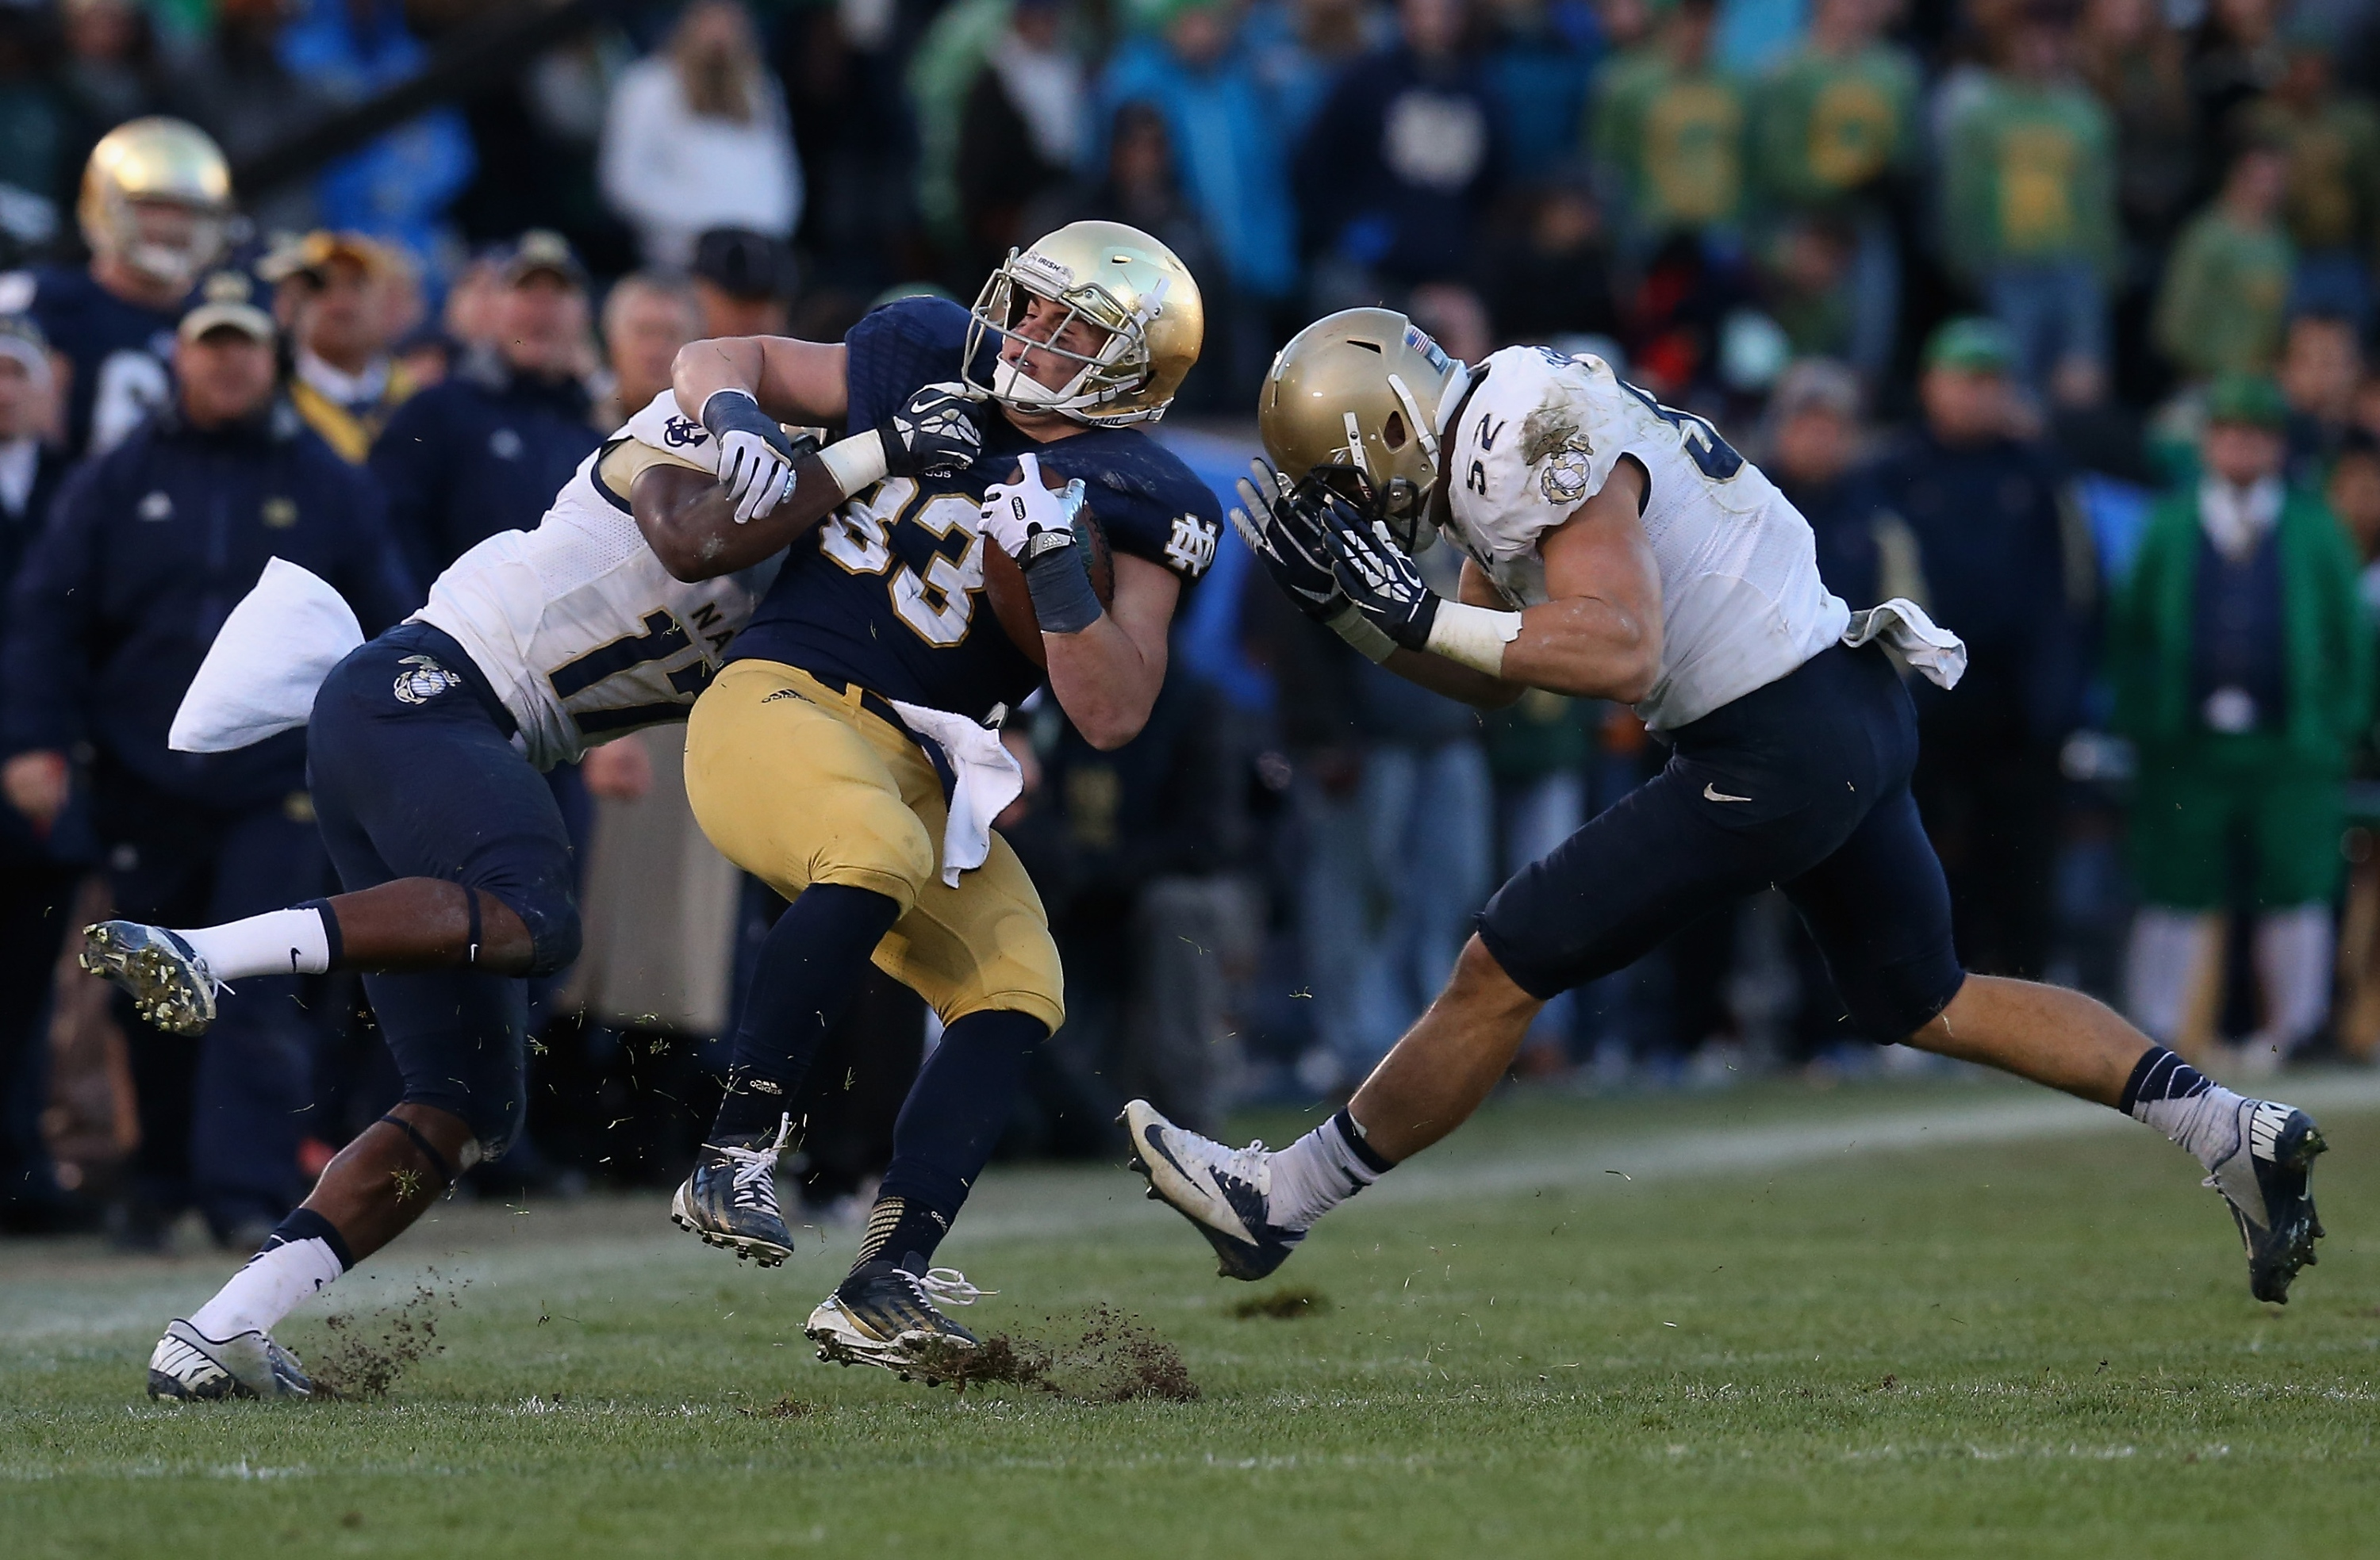 SOUTH BEND, IN - NOVEMBER 02: Cam McDaniel #33 of the Notre Dame Fighting Irish is hit by Kwazel Bertrand #17 and D.J. Sargenti #52 of the Navy Midshipmen at Notre Dame Stadium on November 2, 2013 in South Bend, Indiana. Notre Dame defeated Navy 38-34. (Photo by Jonathan Daniel/Getty Images)